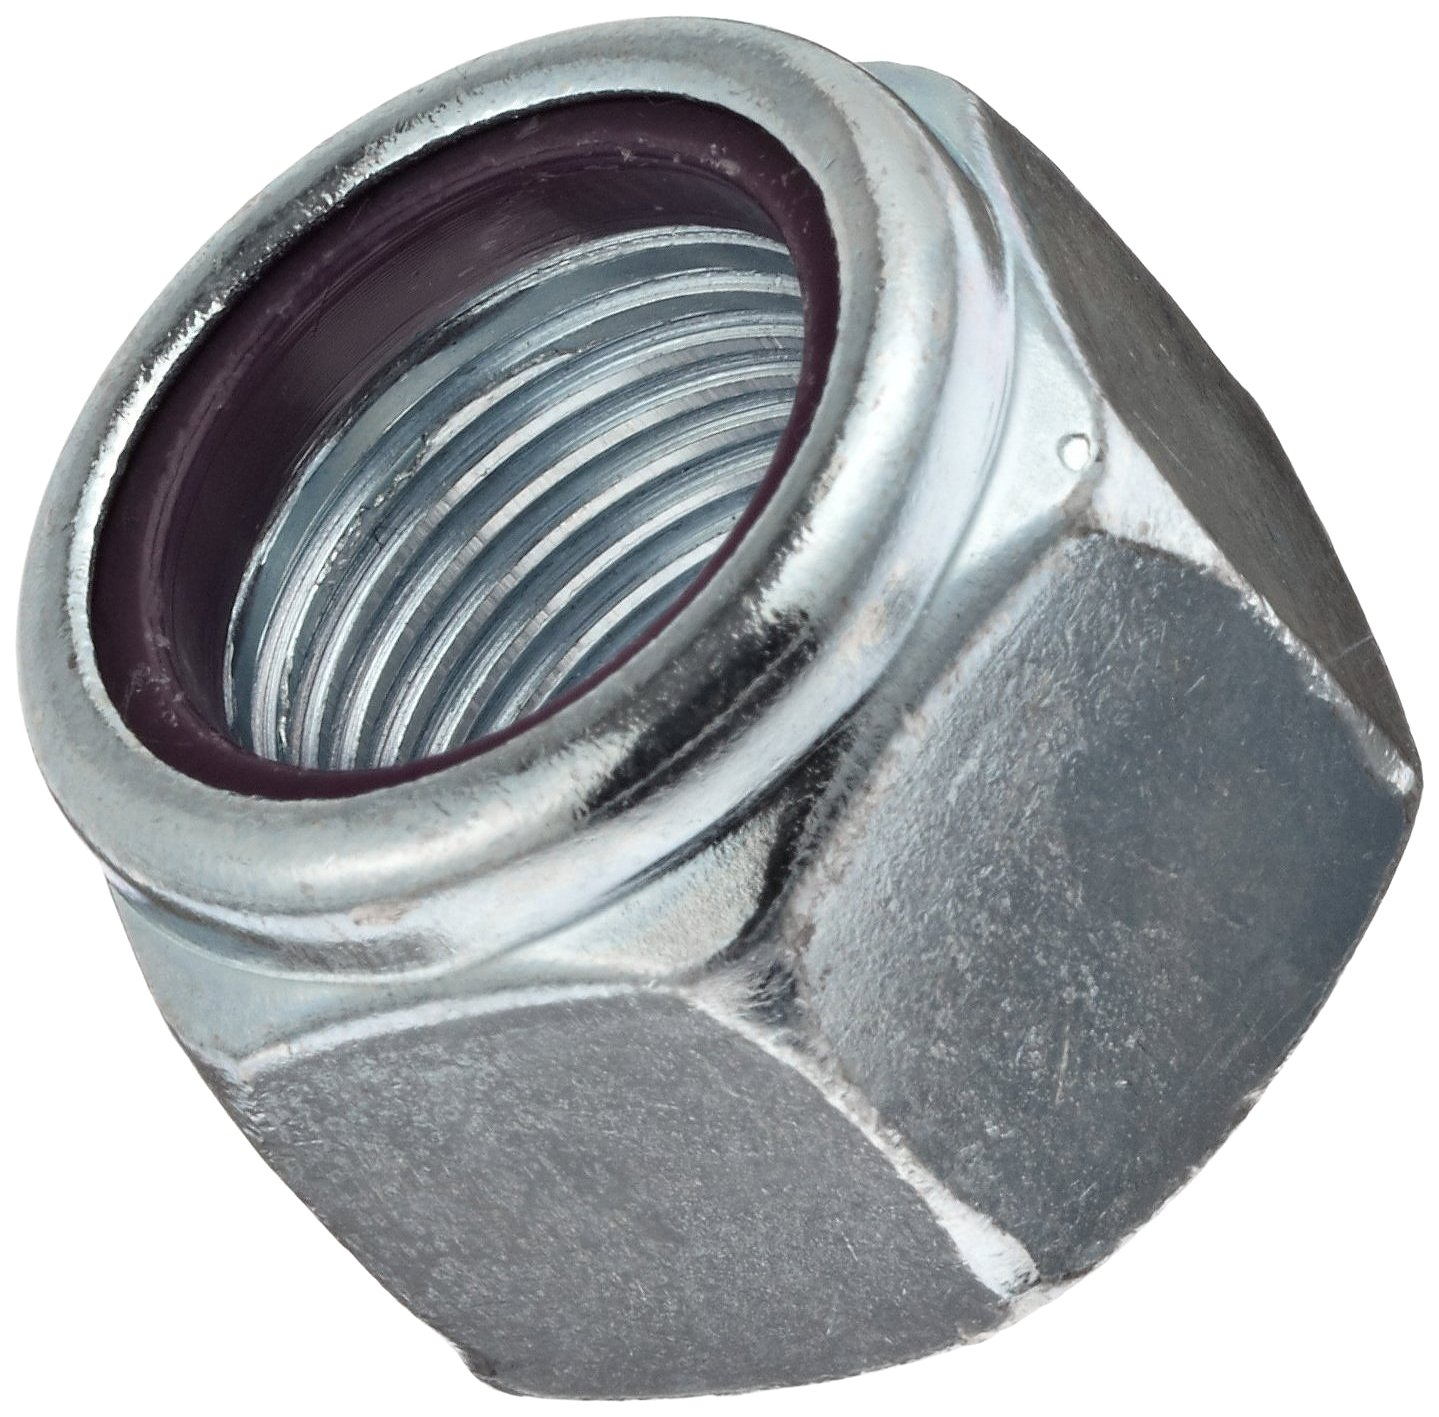 Steel Hex Nut, Zinc Plated Finish, Grade 5, Self-Locking Nylon Insert, Right Hand Threads, 1''-8 Threads, 1.615'' Width Across Flats (Pack of 5) by Small Parts